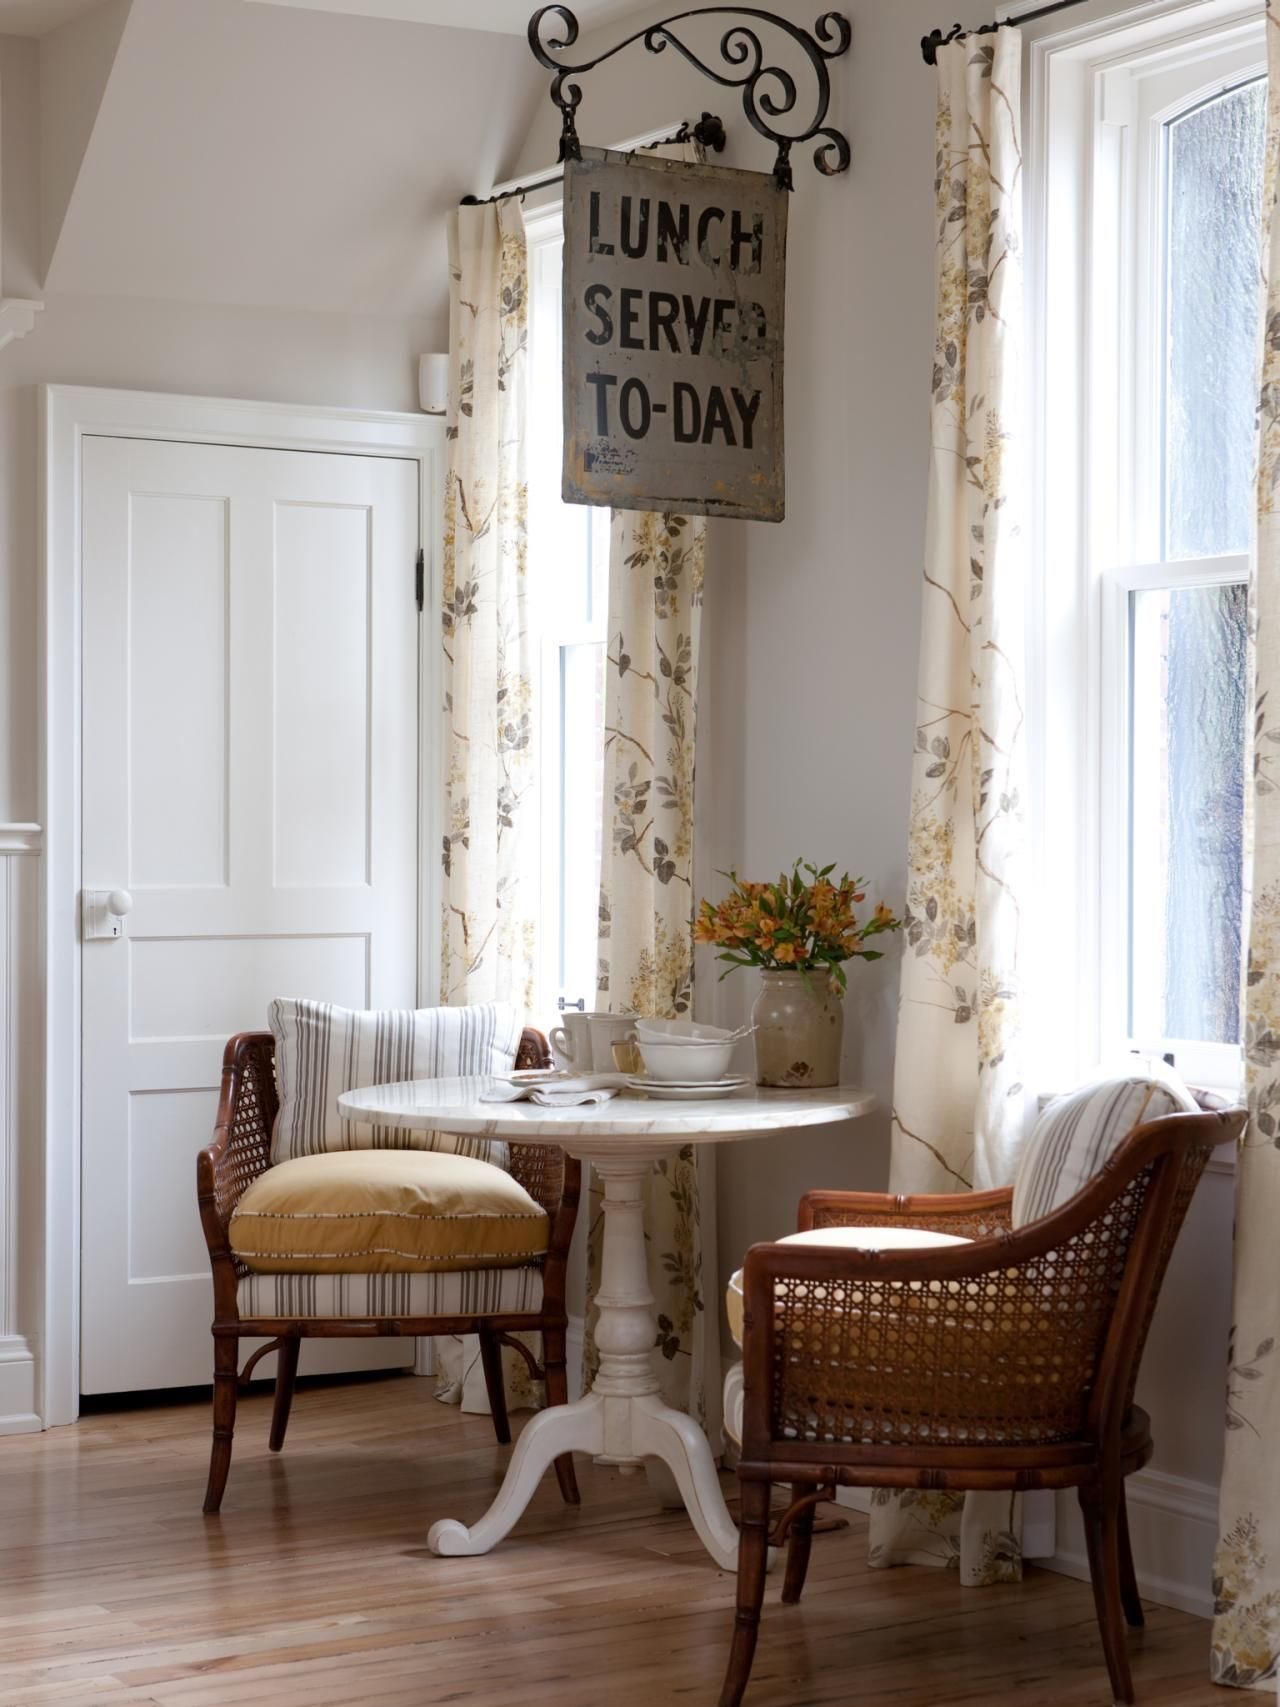 A White Bistro Table Sits Beneath A Vintage Restaurant Sign In This Kitchen Breakfast Nook